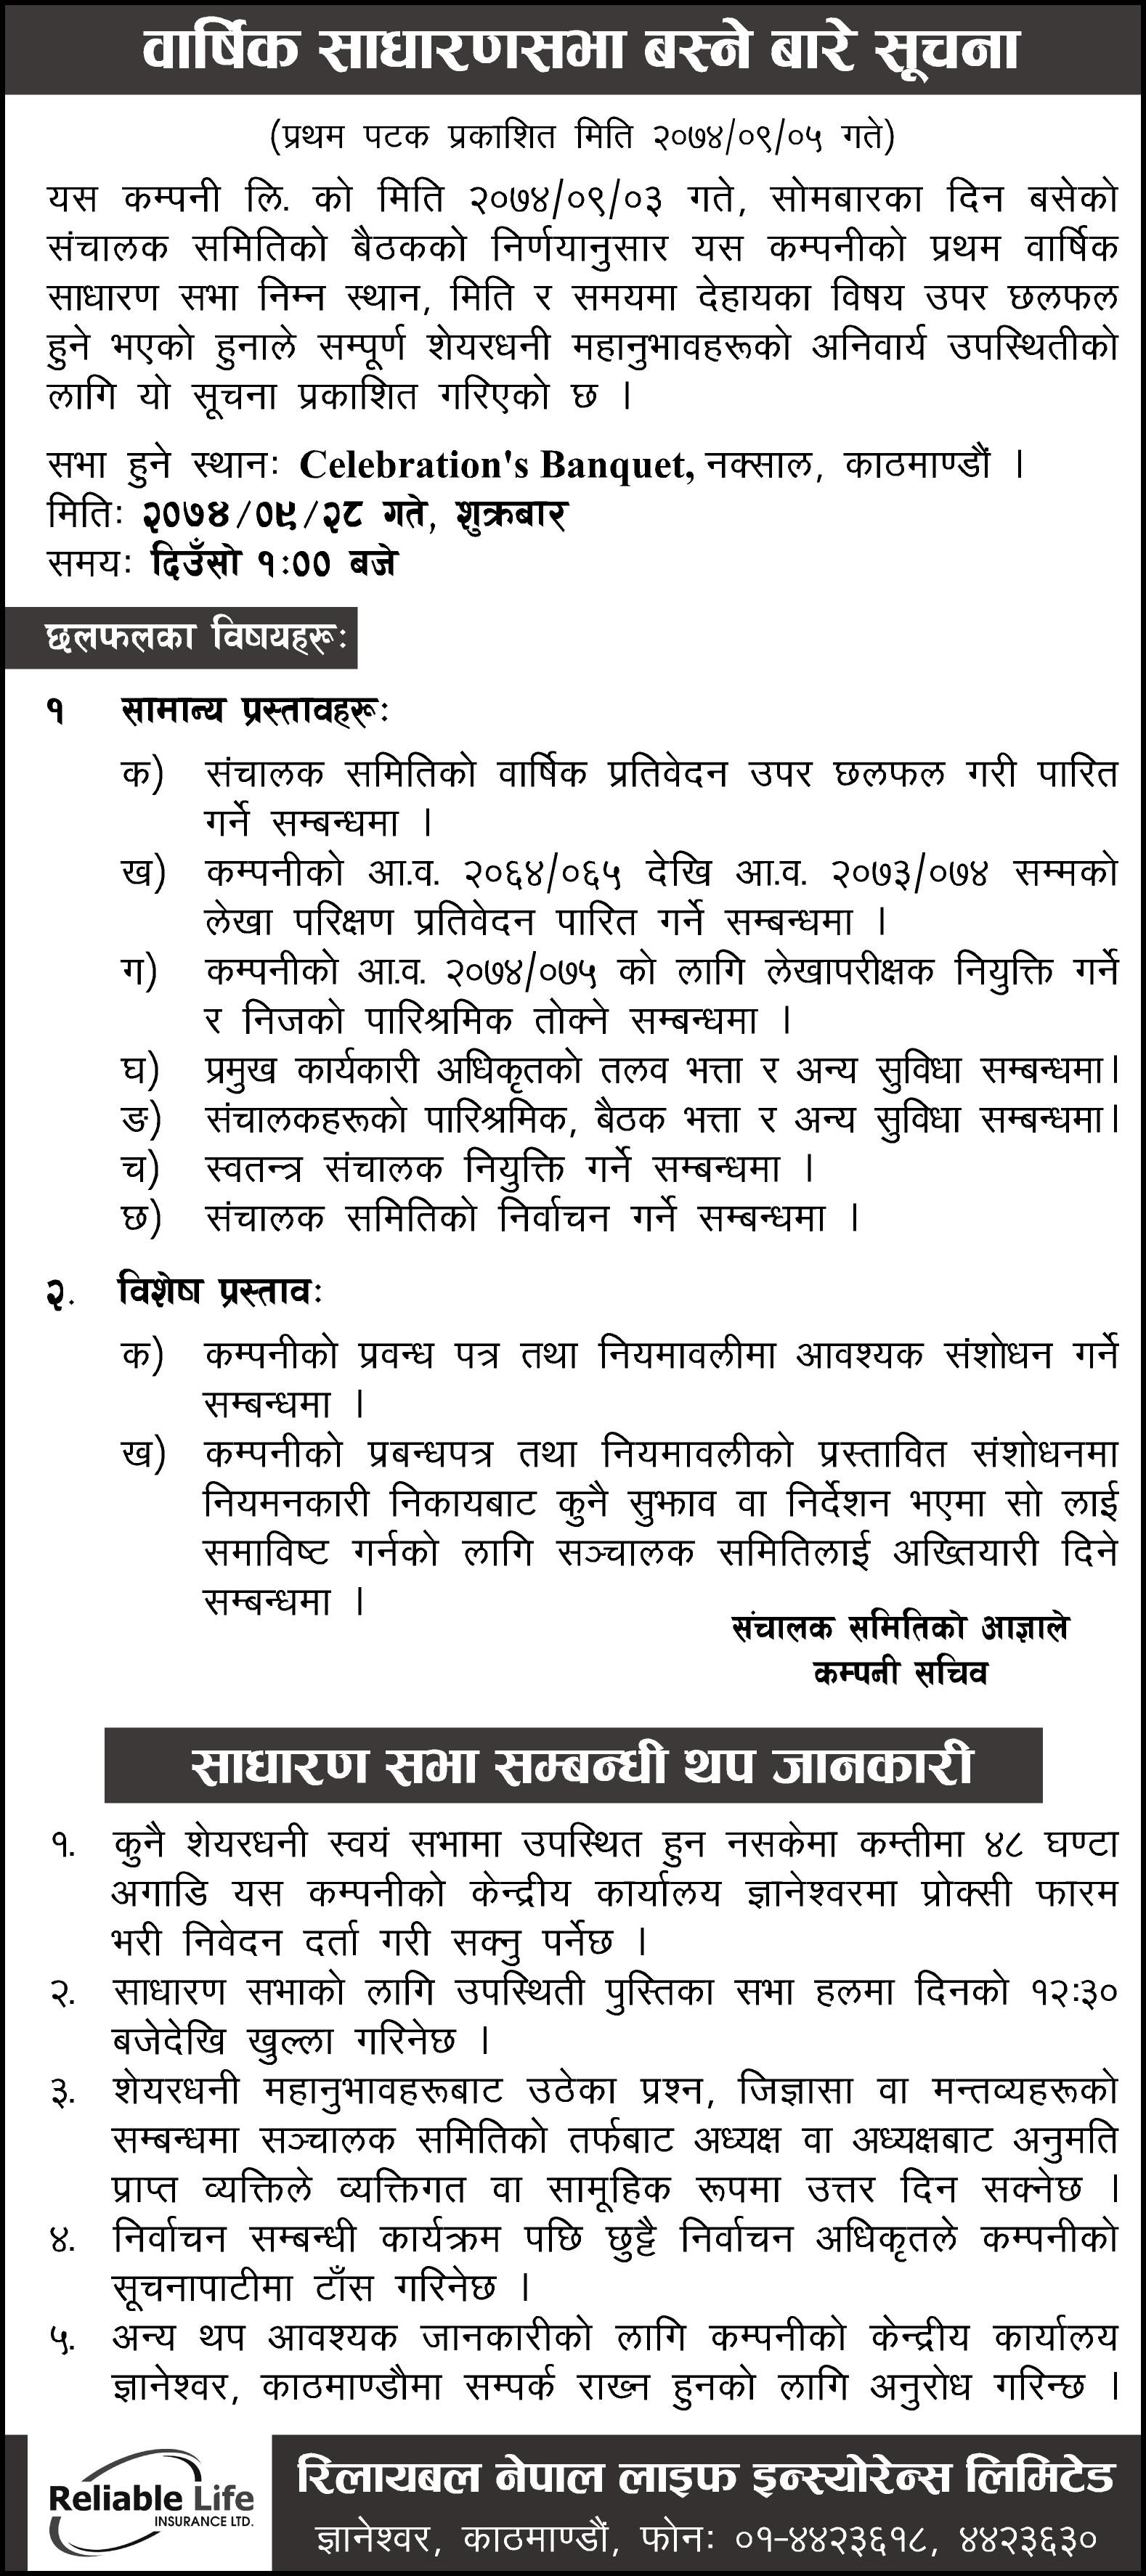 Notice - Reliable Nepal Life Insurance Limited